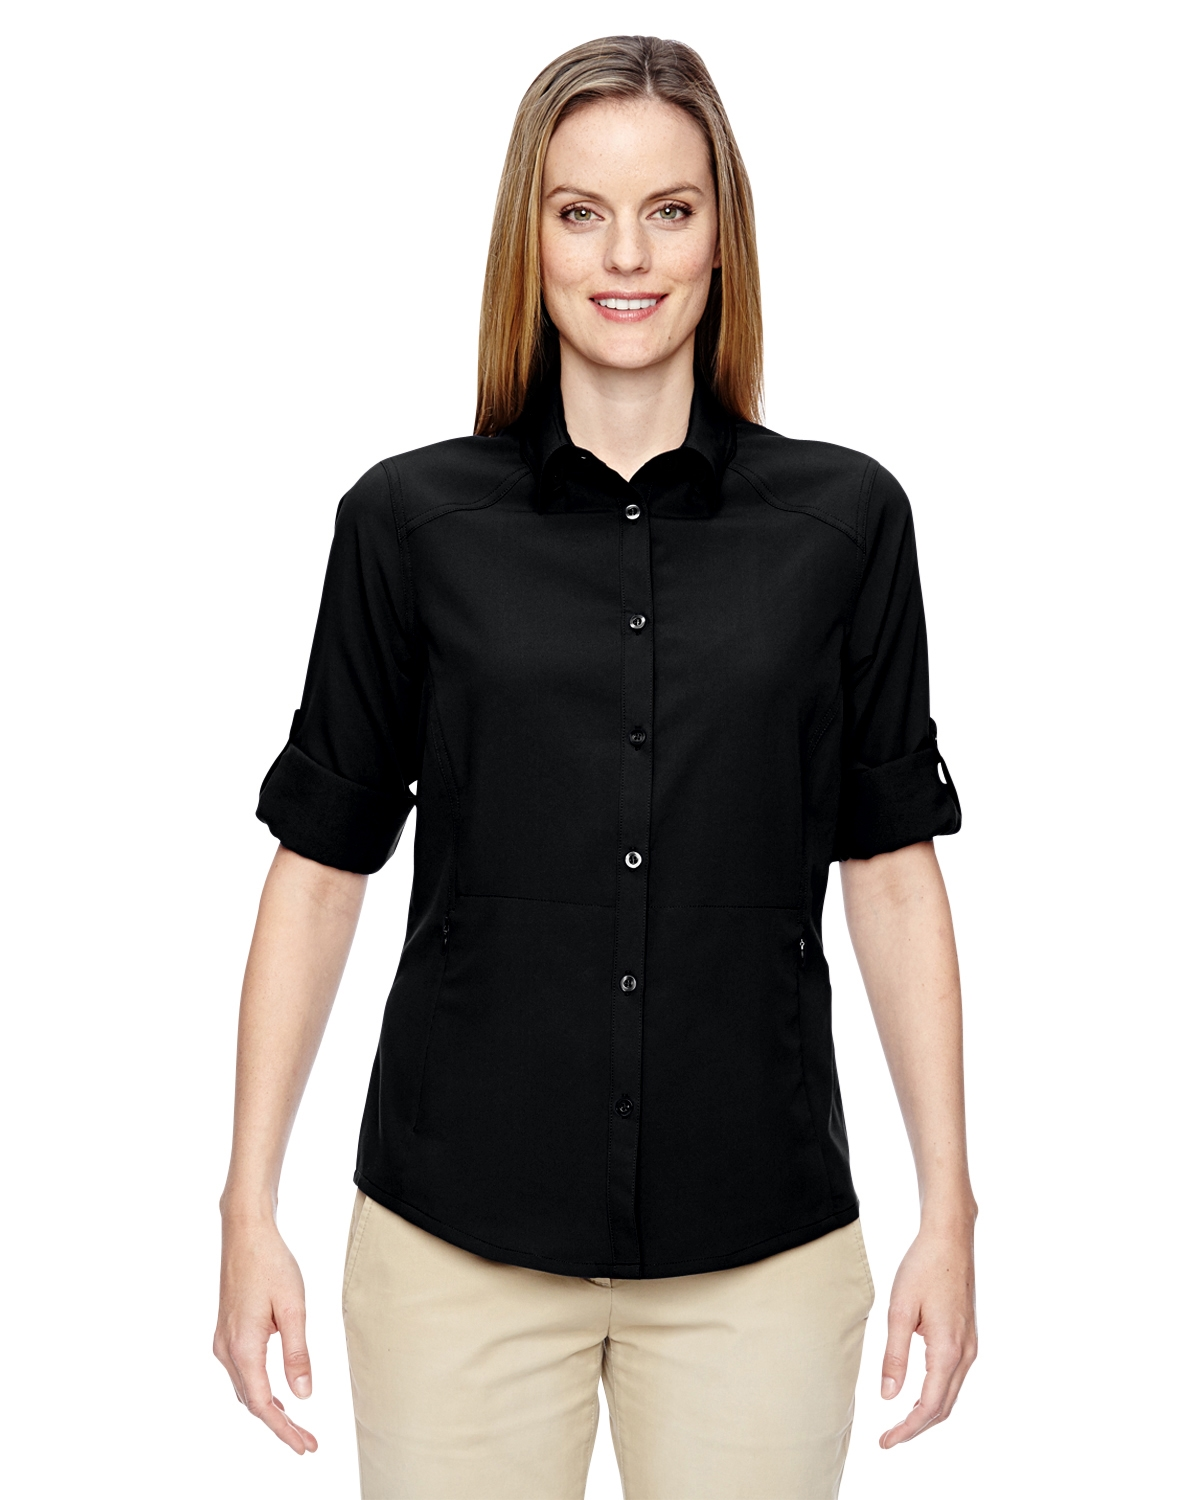 LHA77047 - SPG - North End Excursion Concourse Performance Shirt